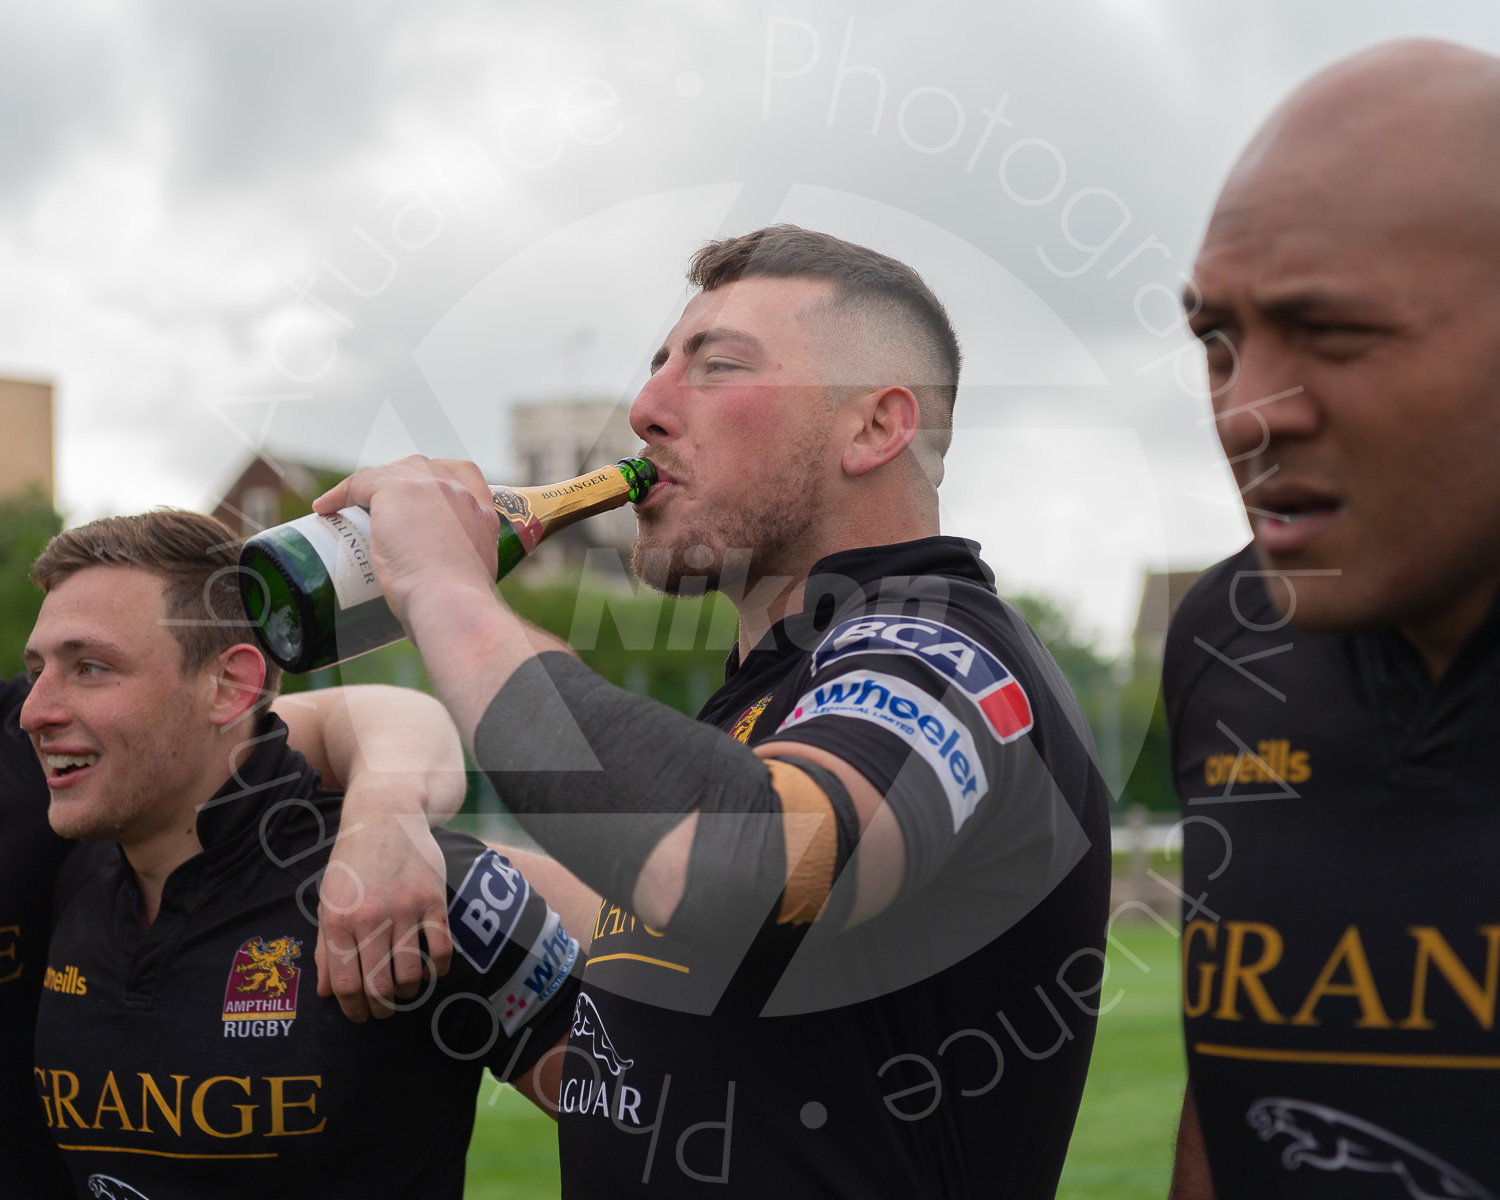 20190427 Loughborough vs Ampthill 1st XV #6663